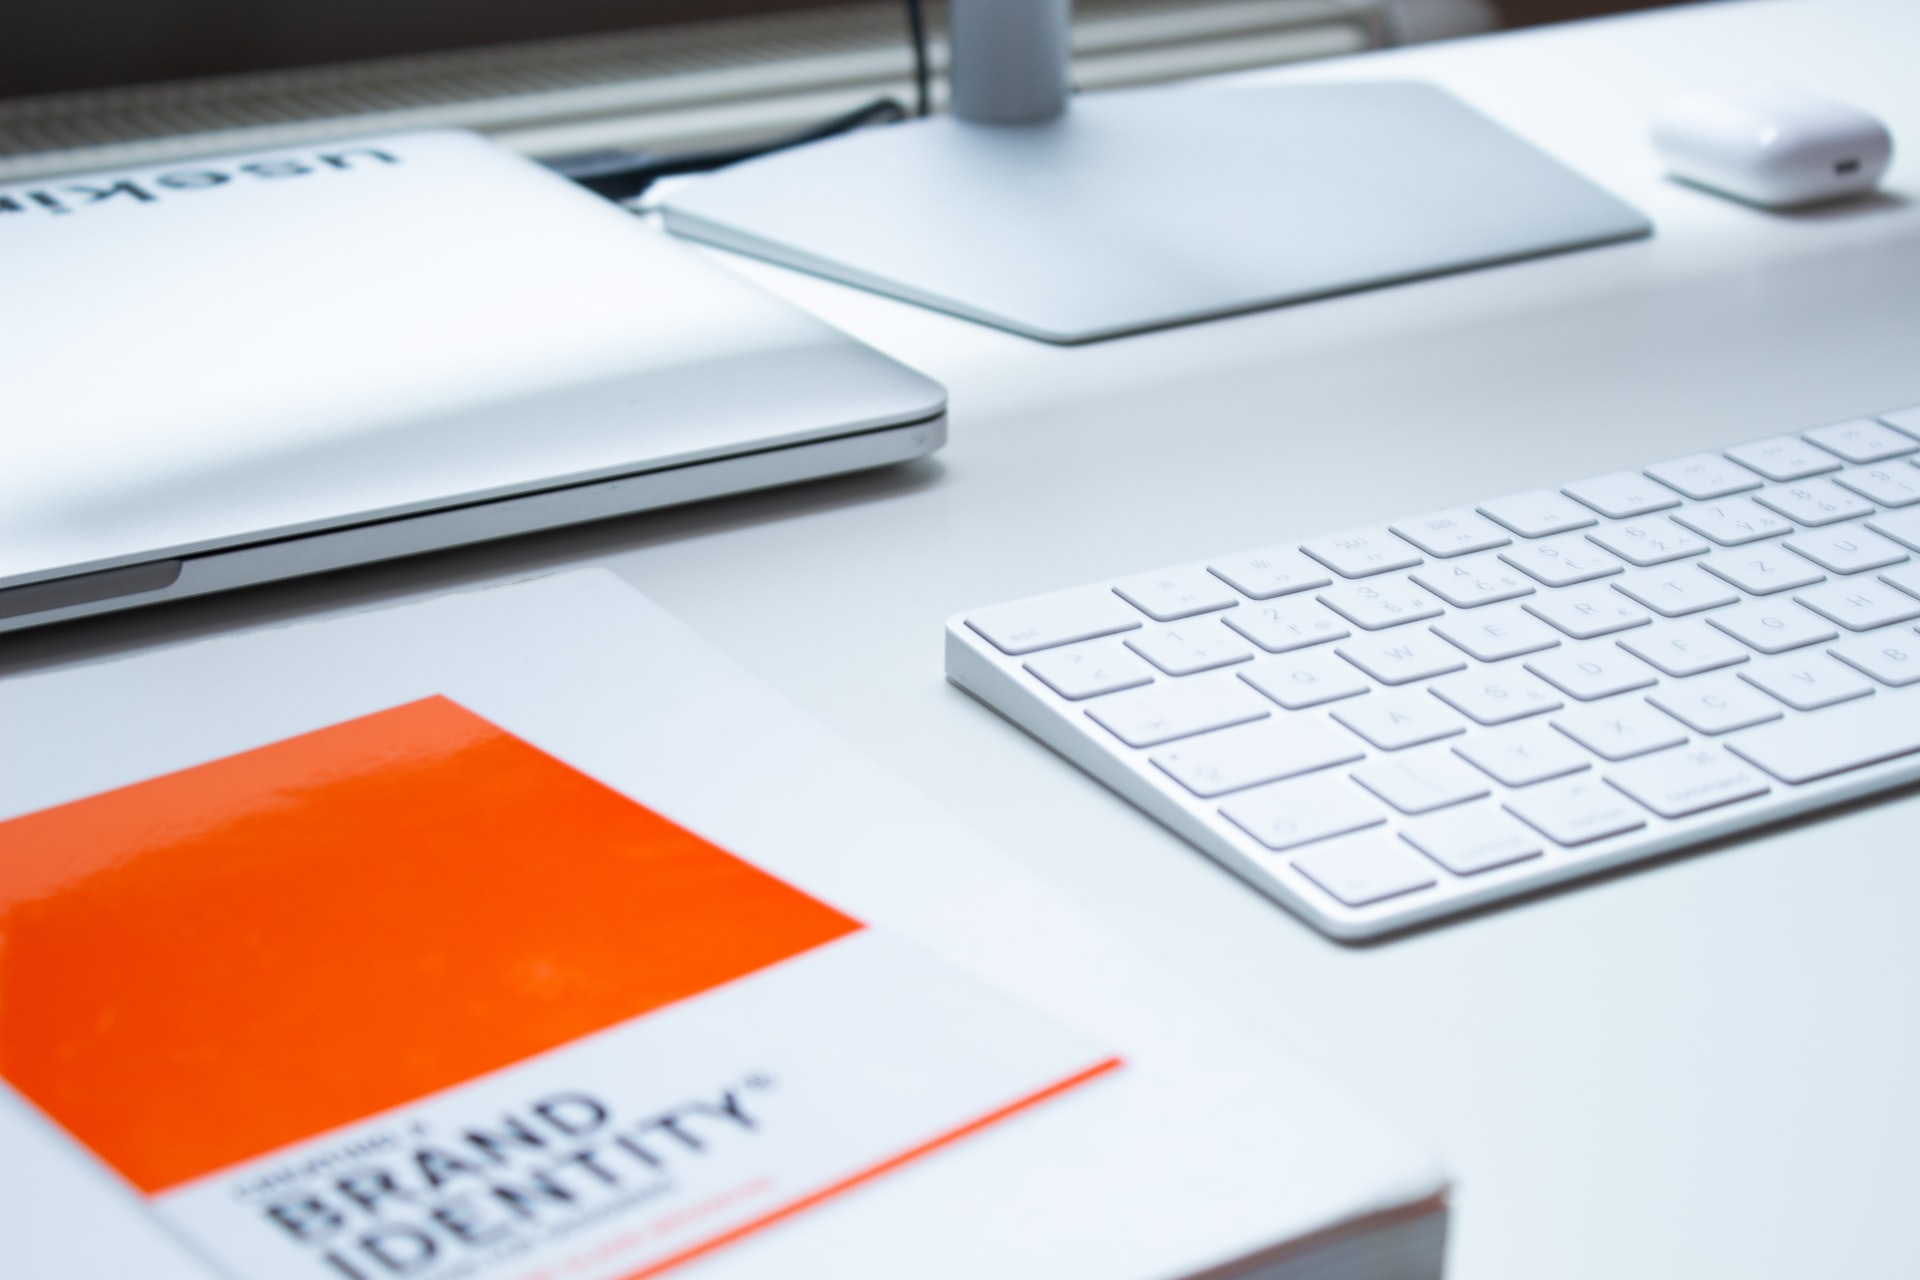 eCommerce brand identity book on a desk